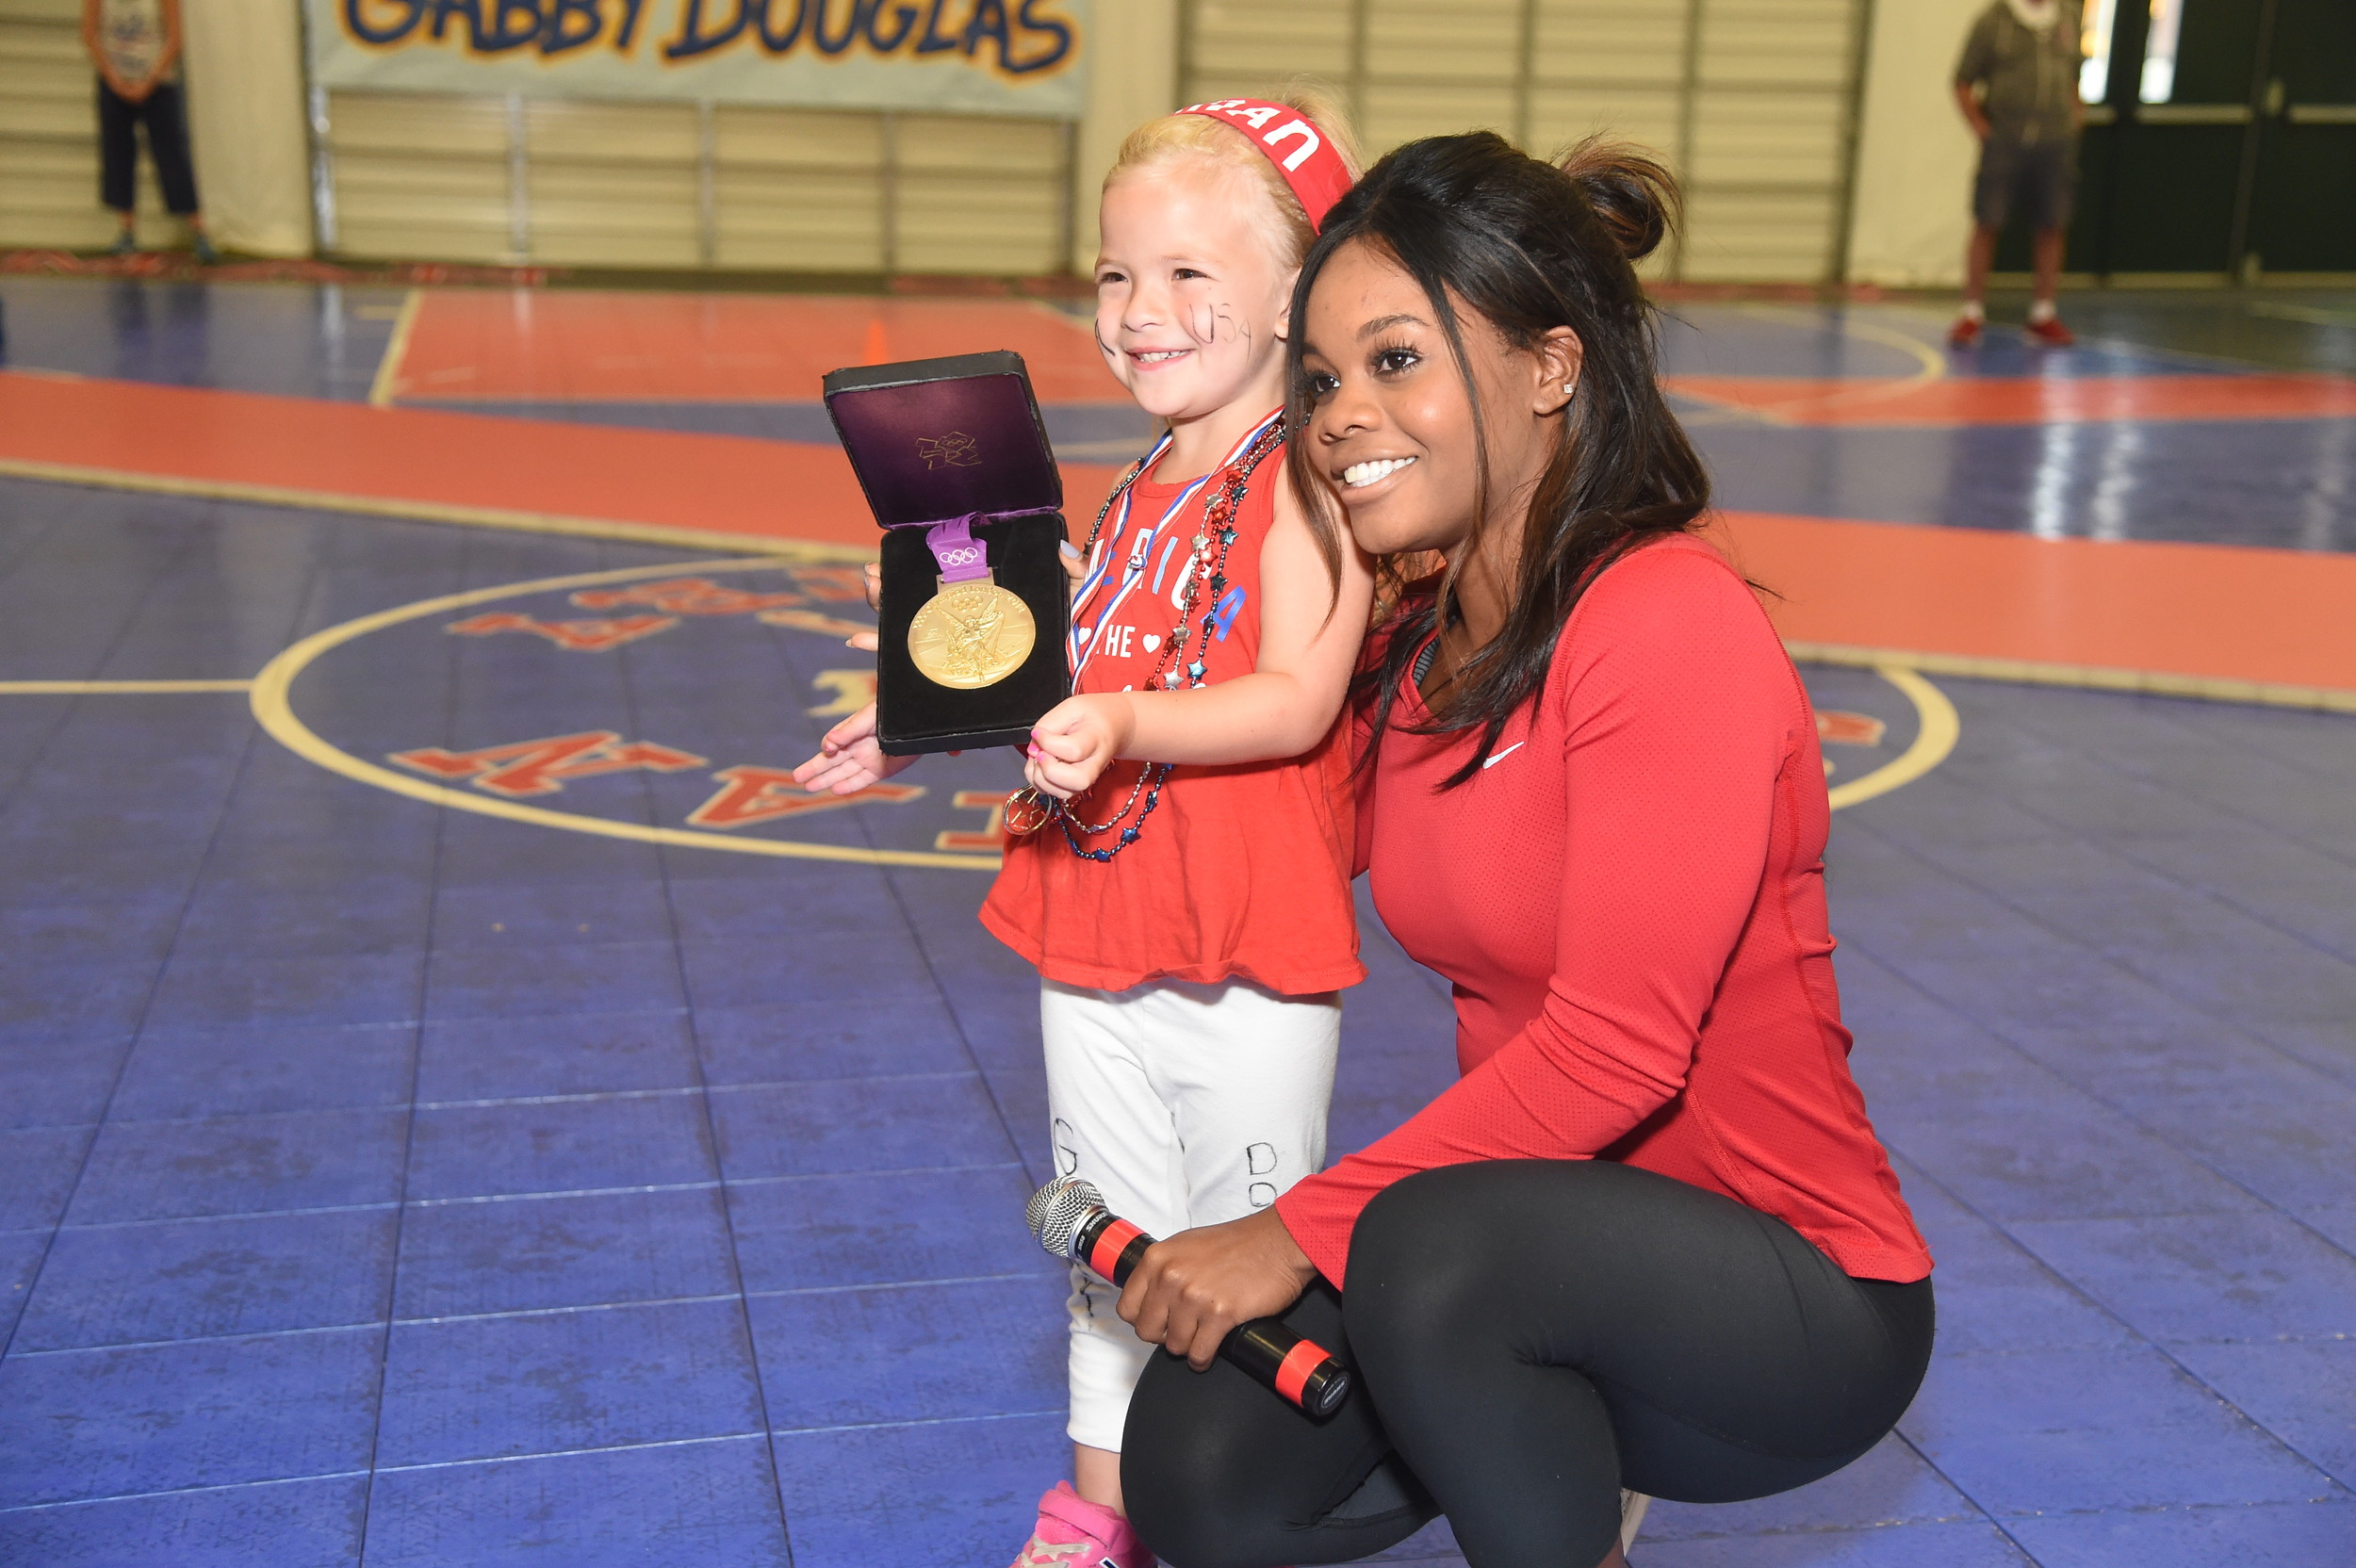 Camper Emma Rice, 5, was thrilled to meet Gabby Douglas and hold one of the Olympian's medals.